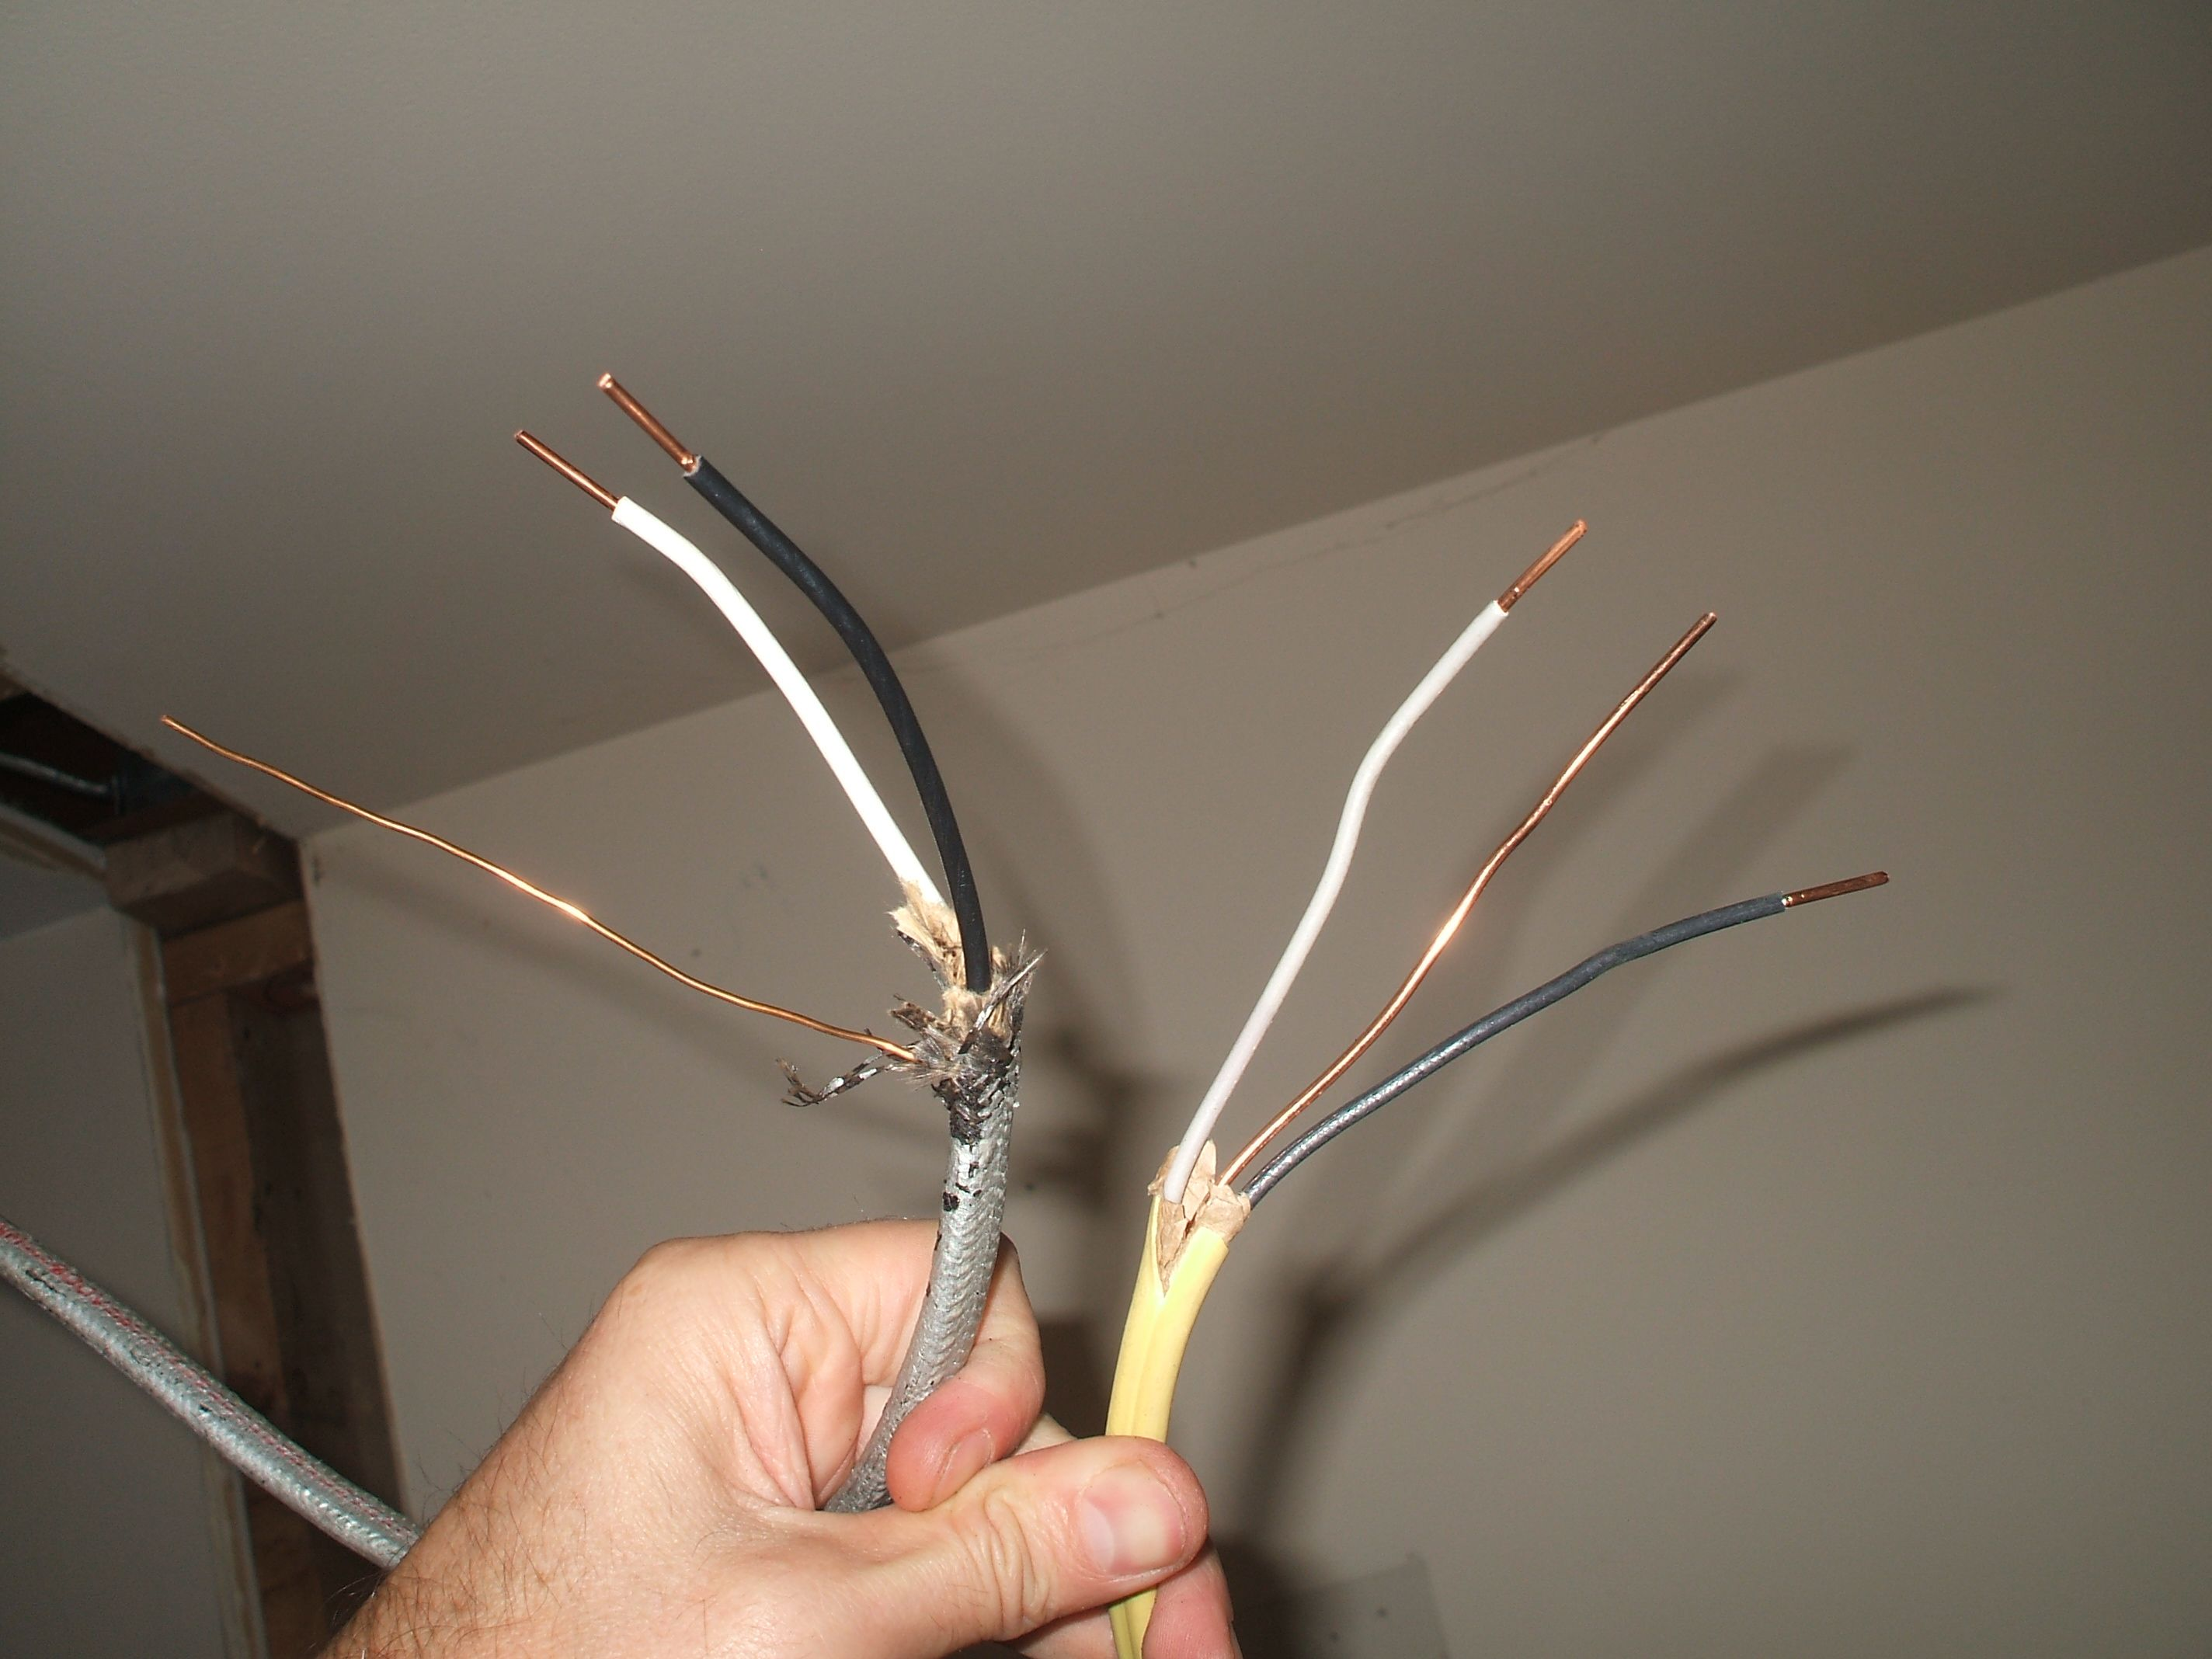 How To Splice Electrical Wire Wiring Codes For Basement